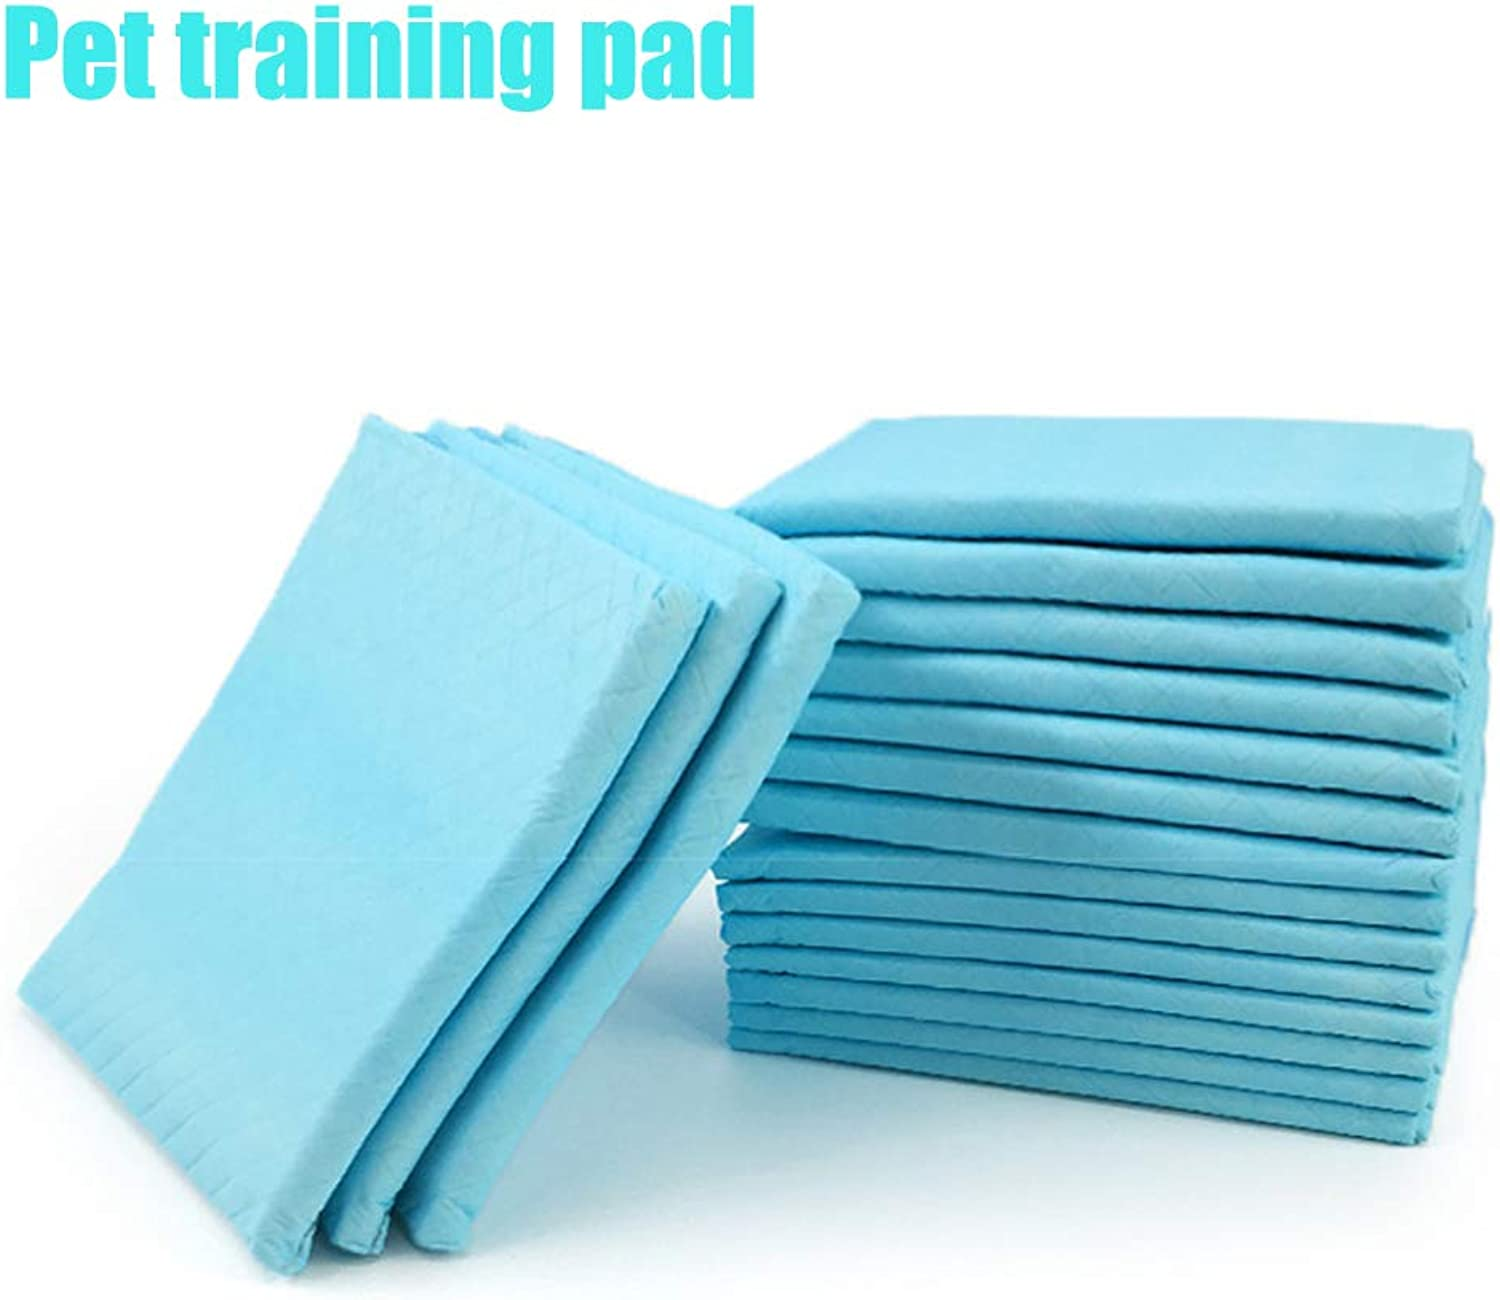 One Time Pet Training Diaper Pad, Native Wood Pulp, SkinFriendly, Dry, Breathable, Soft and Comfortable Deodorant Pads Suitable for All Types of Cats and Dogs,60  90cm20pcs,XL